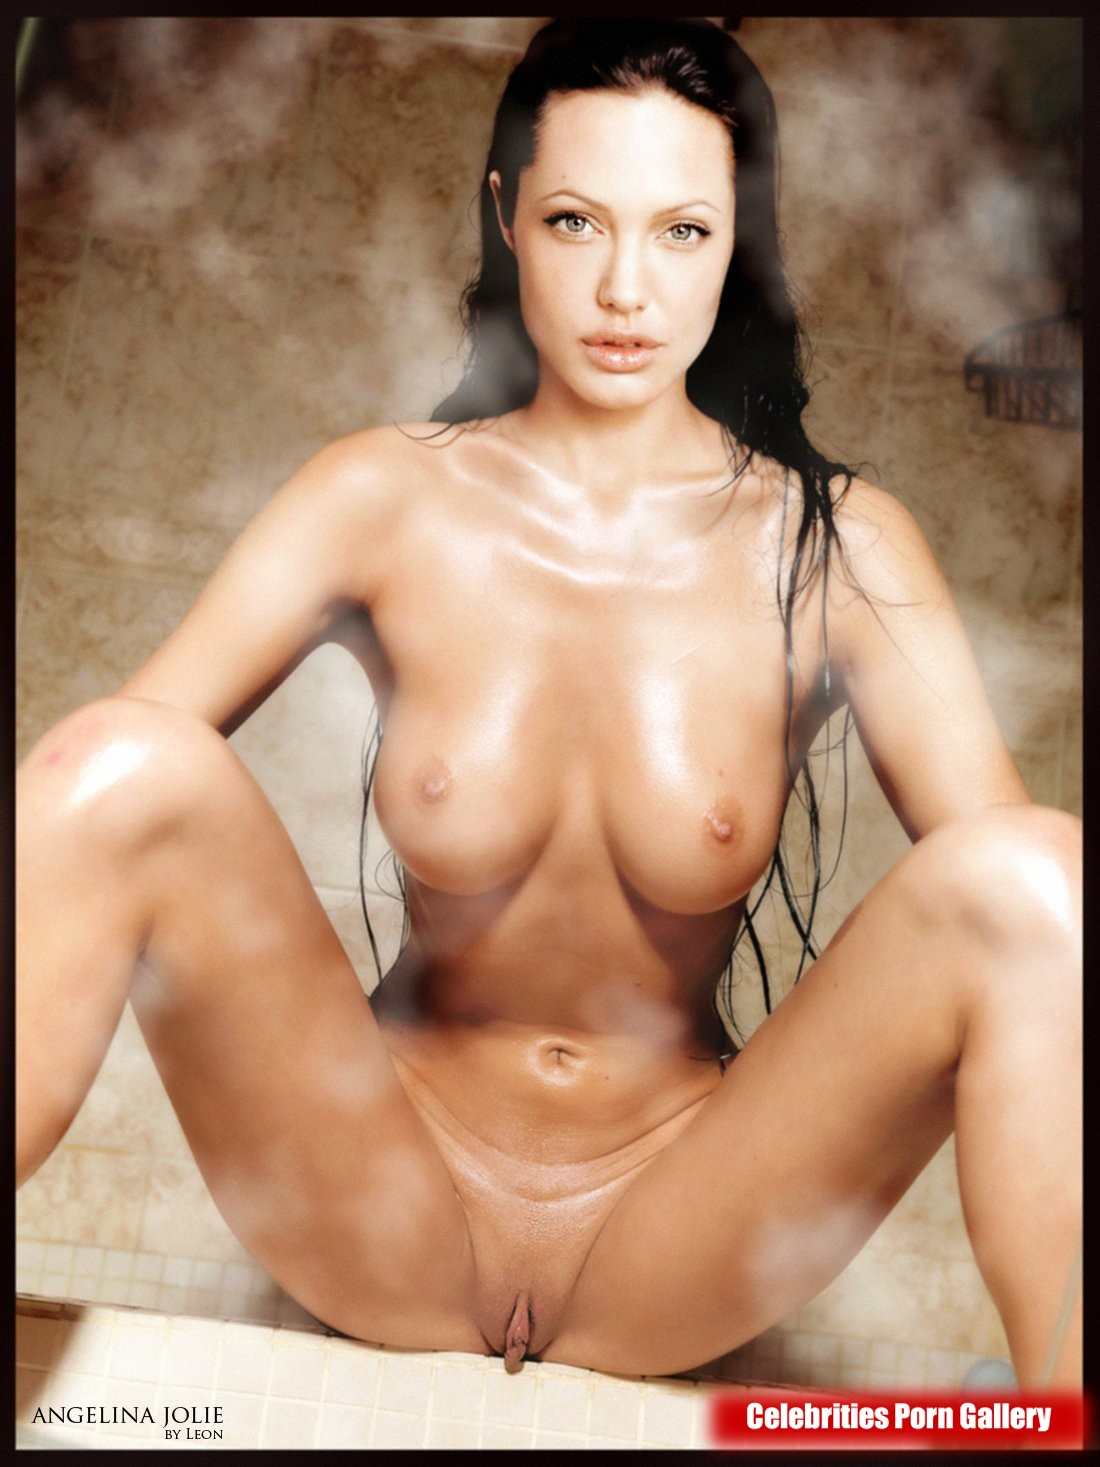 Remarkable, Celebrity famou nude angelina jolie remarkable